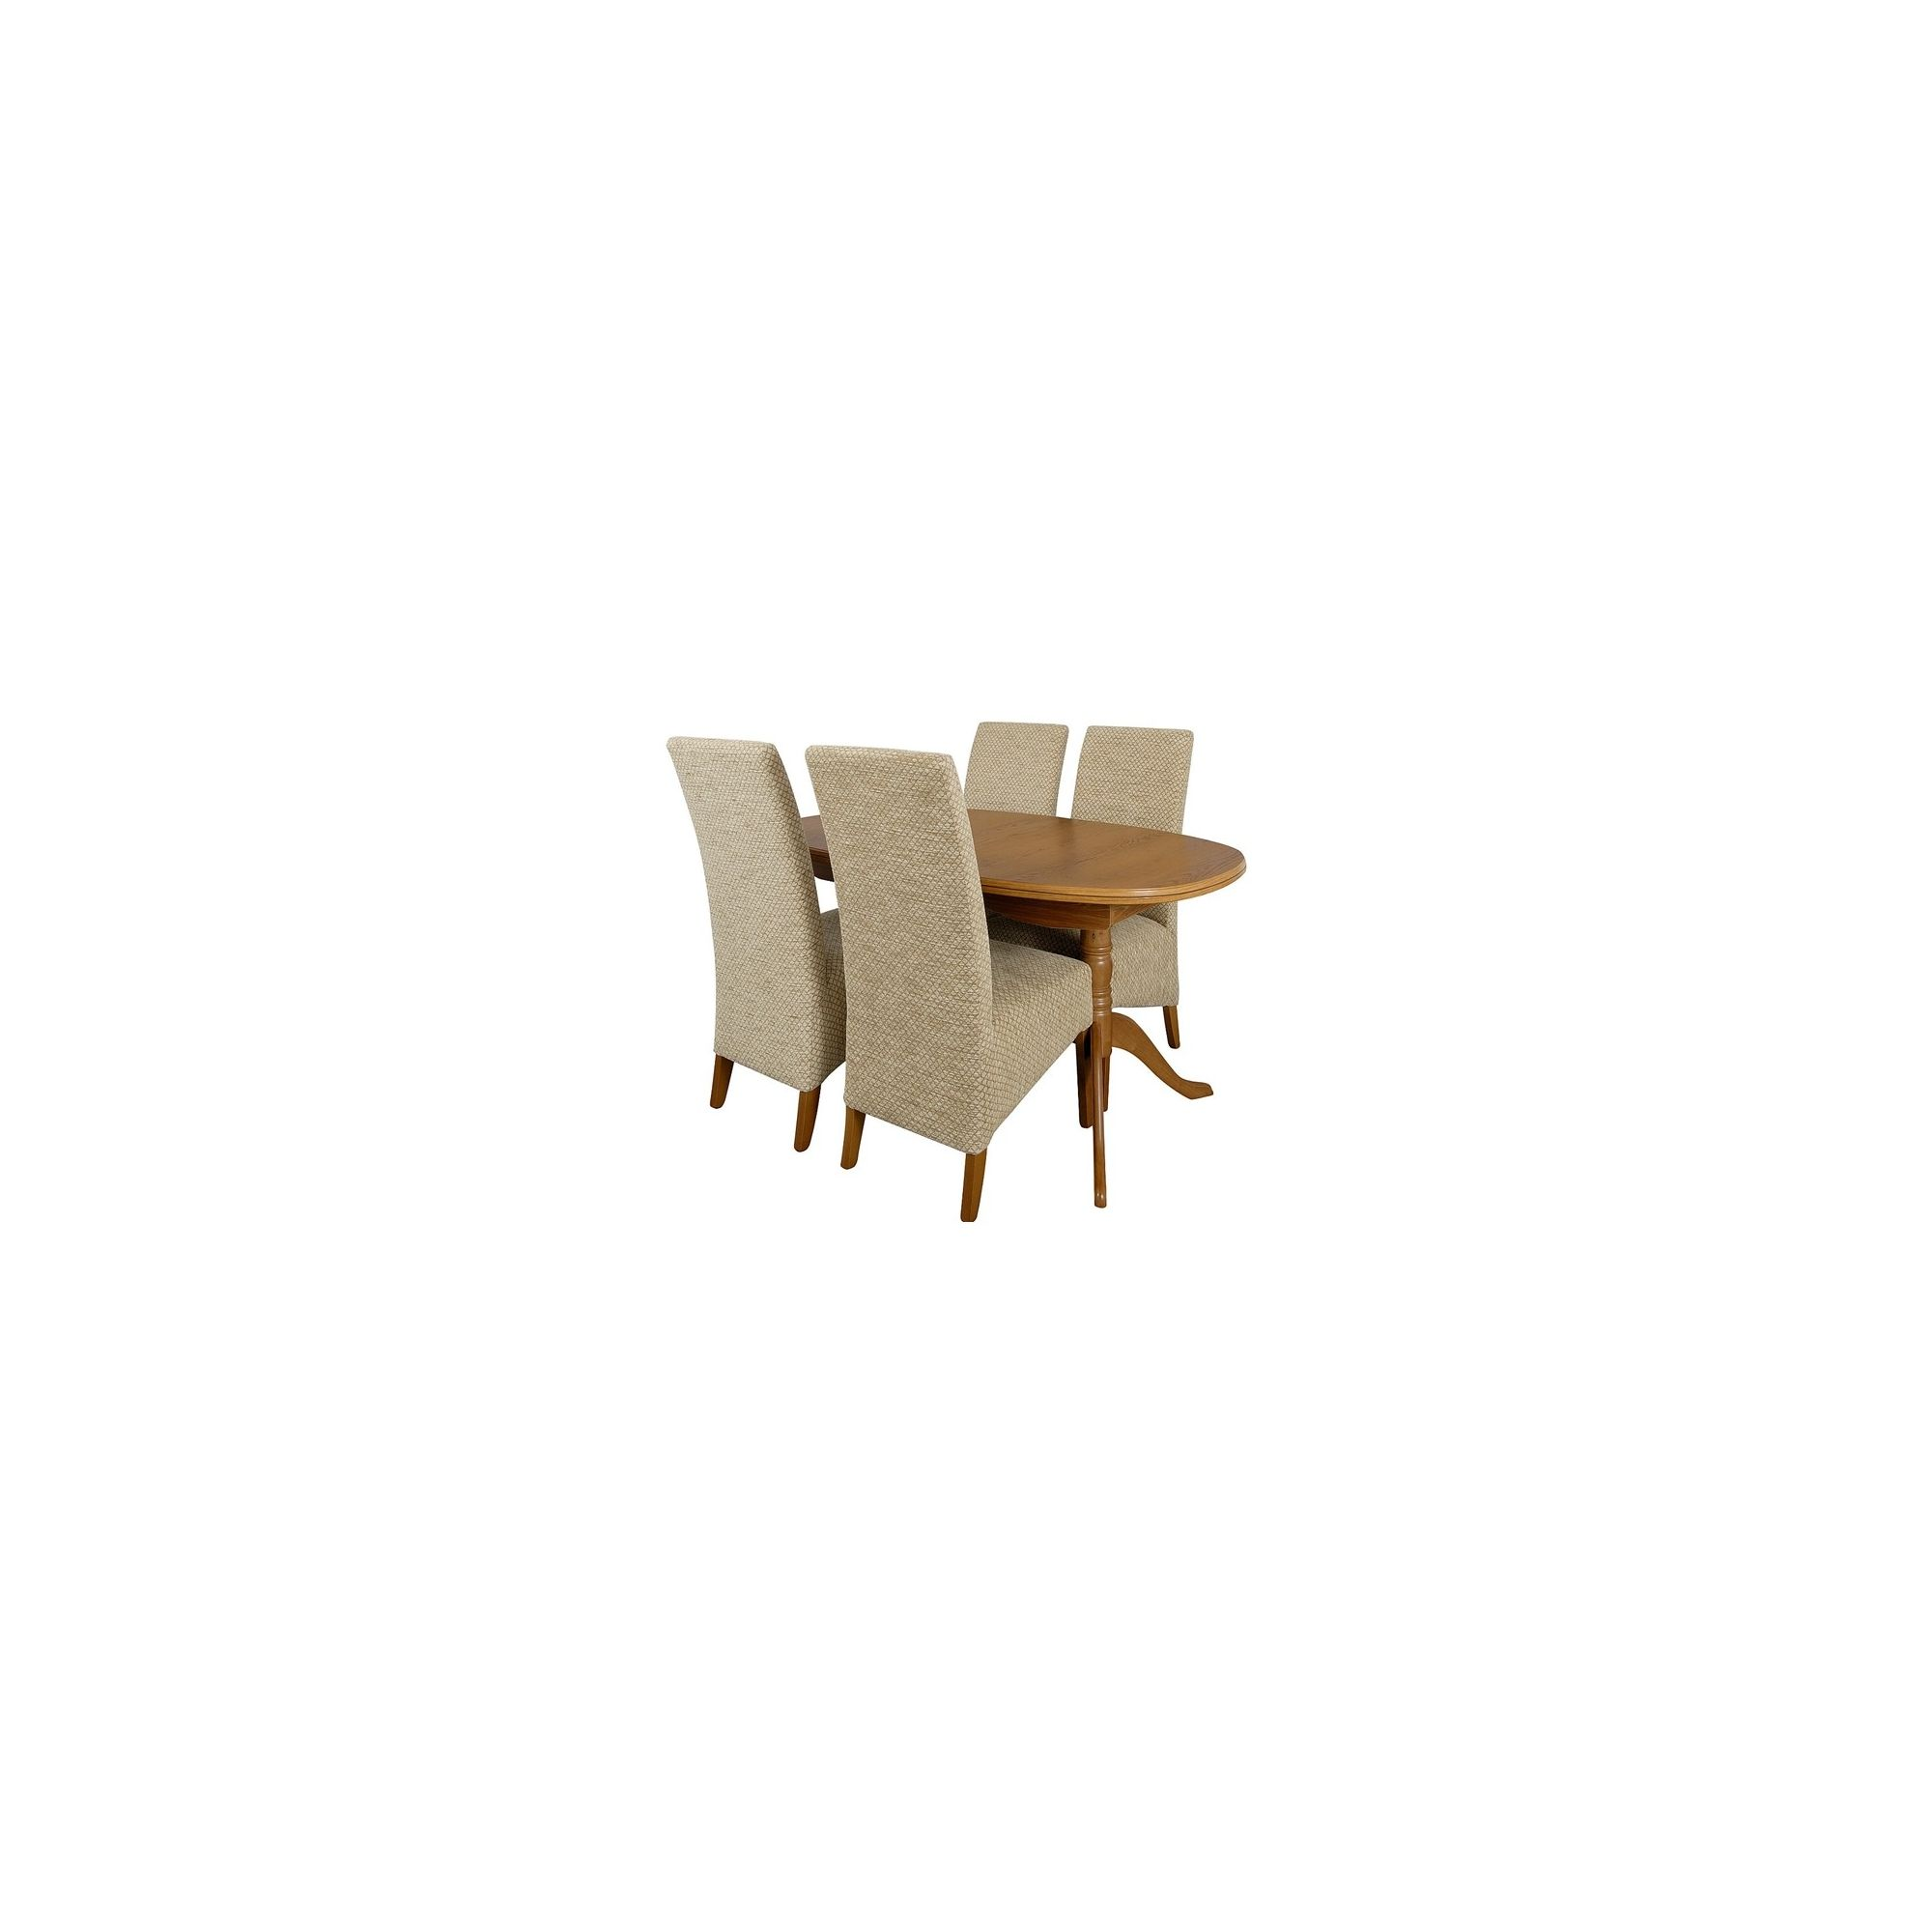 Caxton Canterbury 4 Chair Dining Set in Golden Chestnut at Tesco Direct